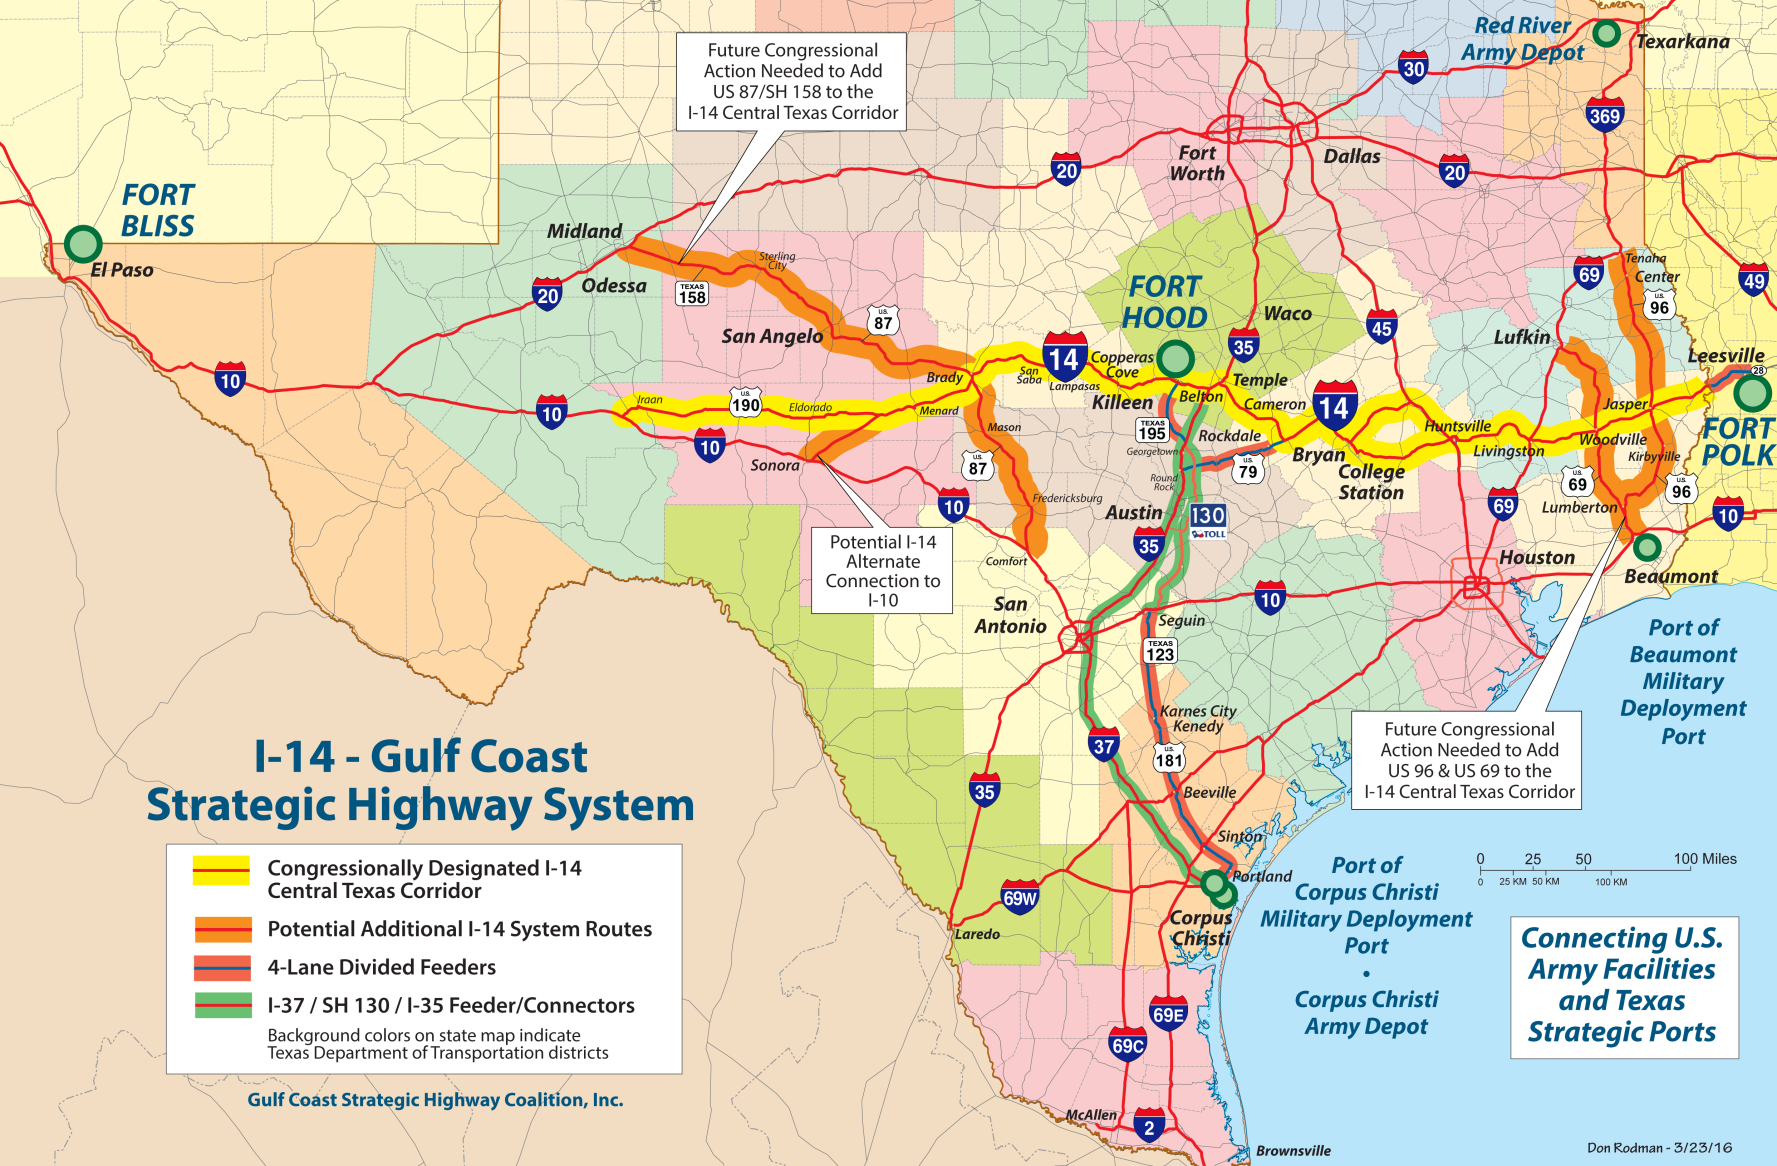 MOTRAN calls for changes in I-14 route - Midland Reporter-Telegram